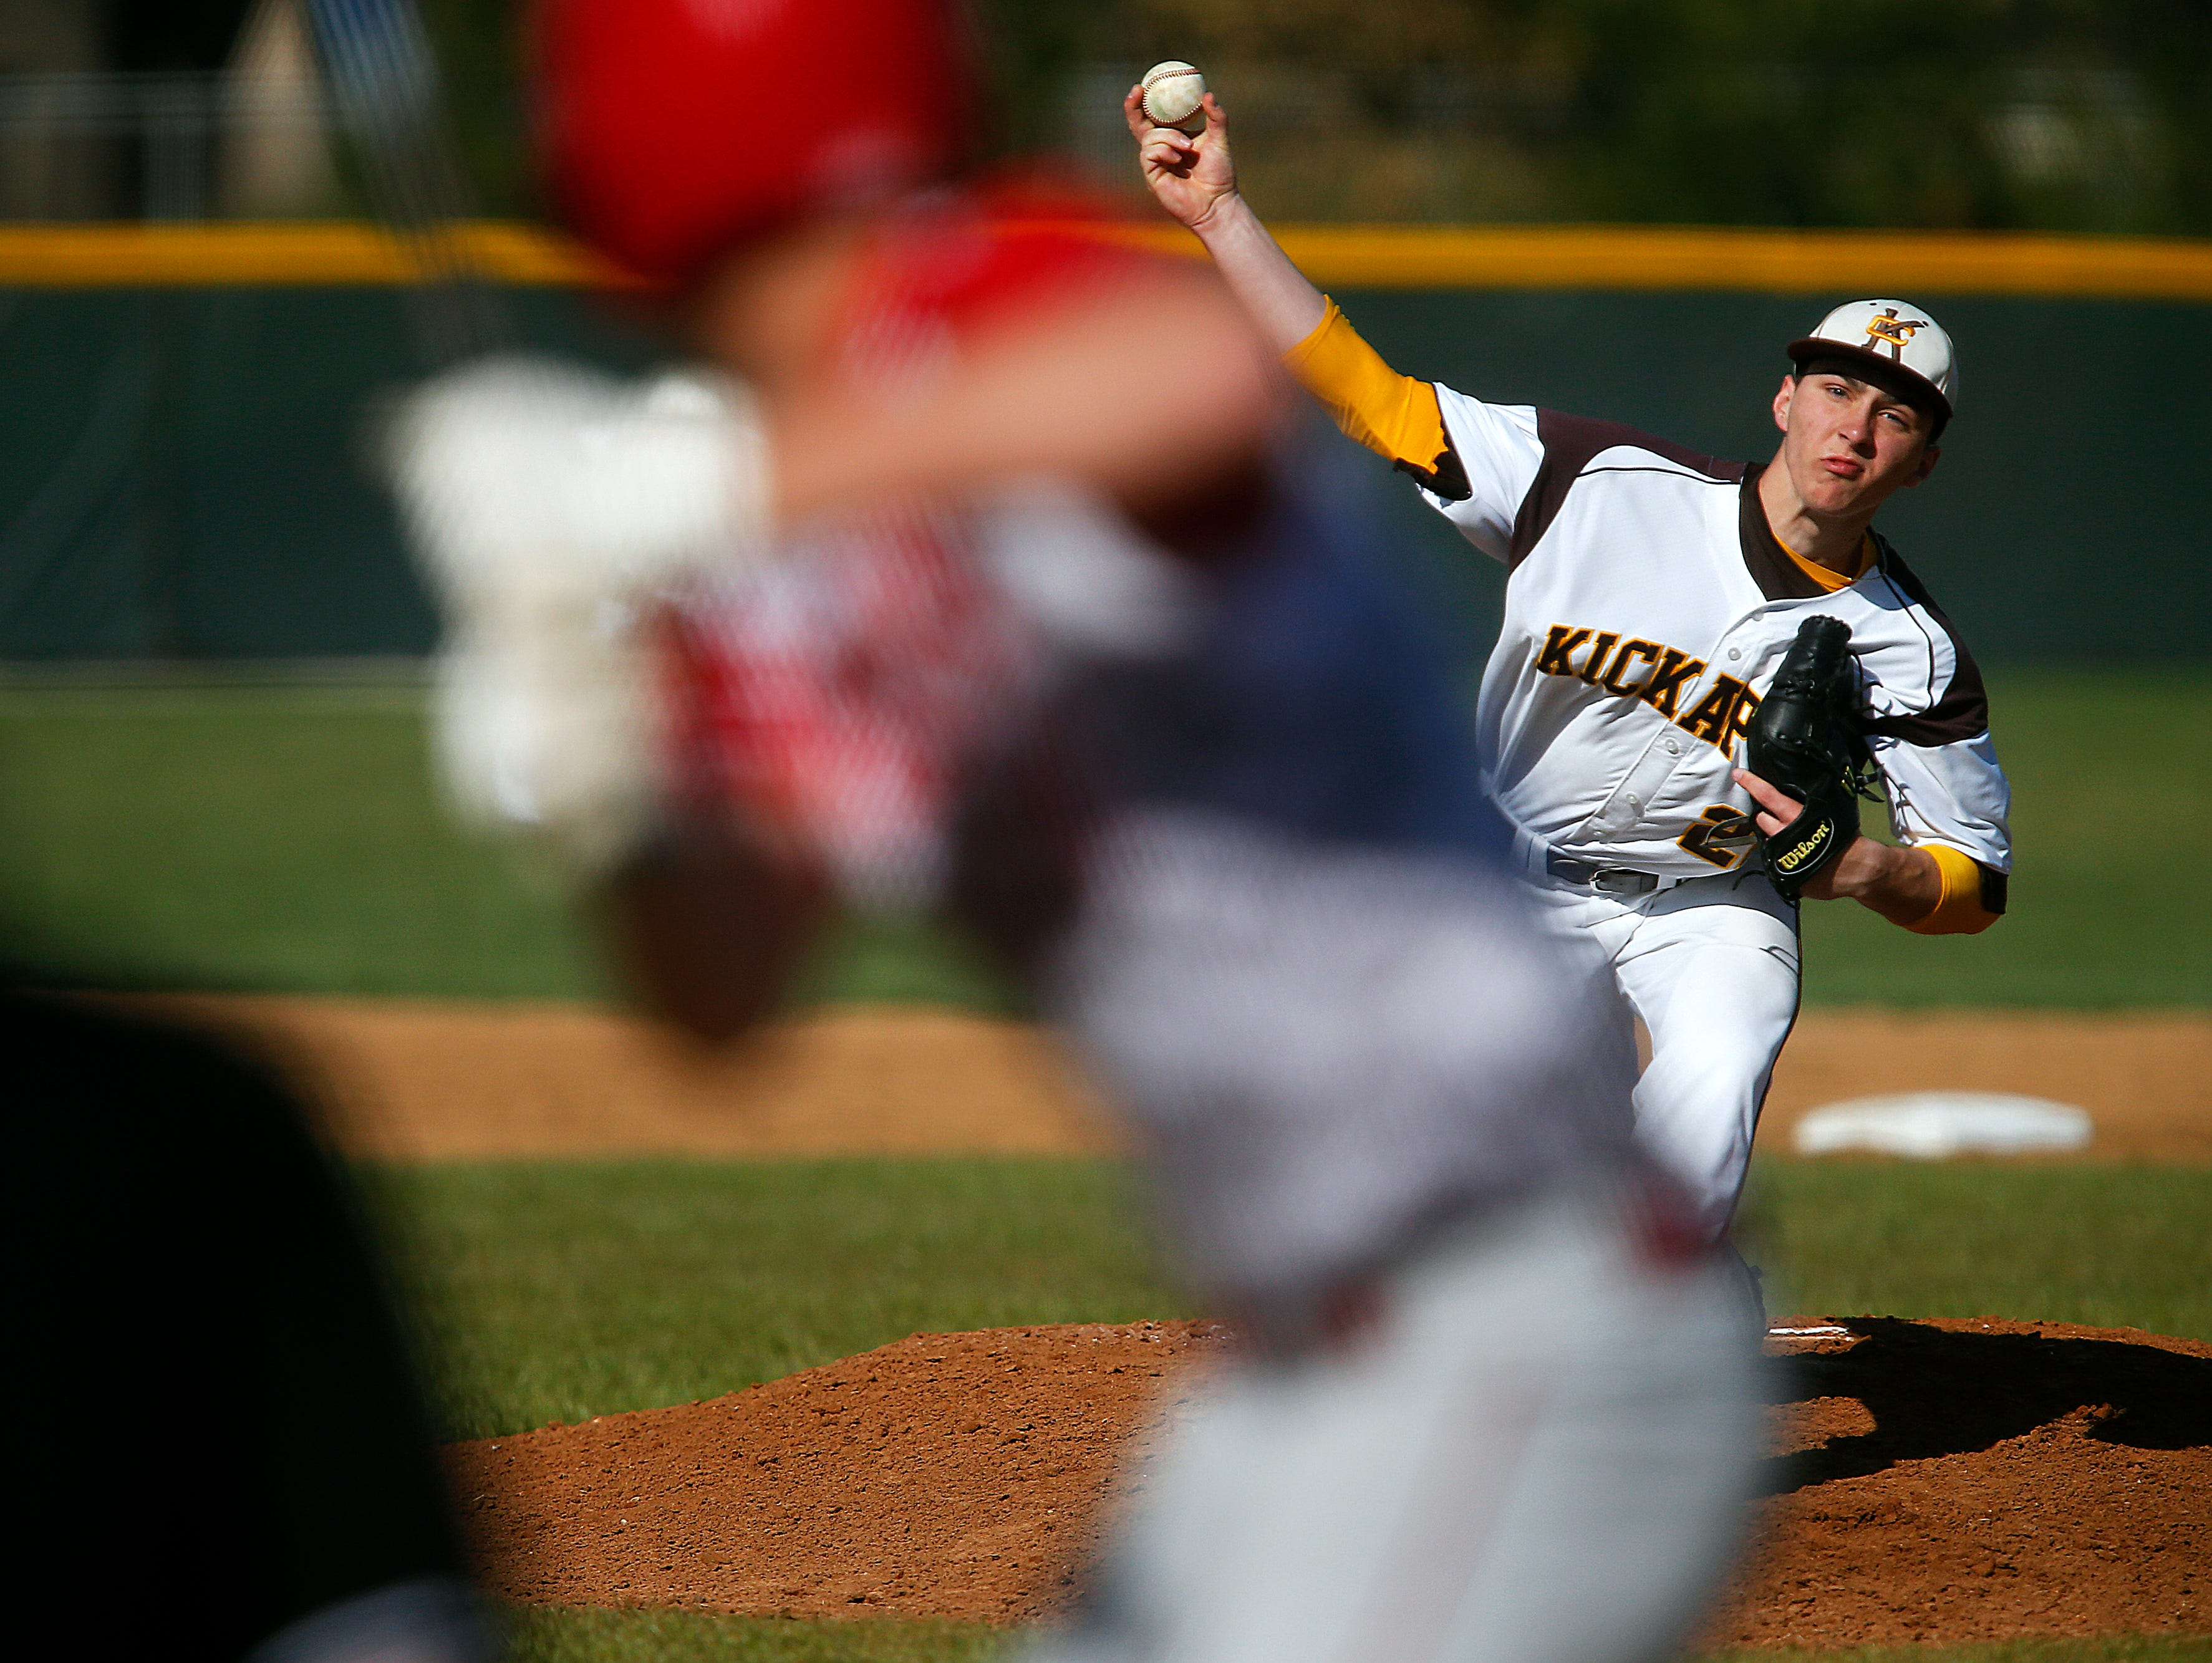 Kickapoo High School pitcher Kaleb Schmidt (22) pitches during first inning action of the high school baseball game between Kickapoo and Ozark at Kickapoo High School in Springfield, Mo. on March 29, 2016.